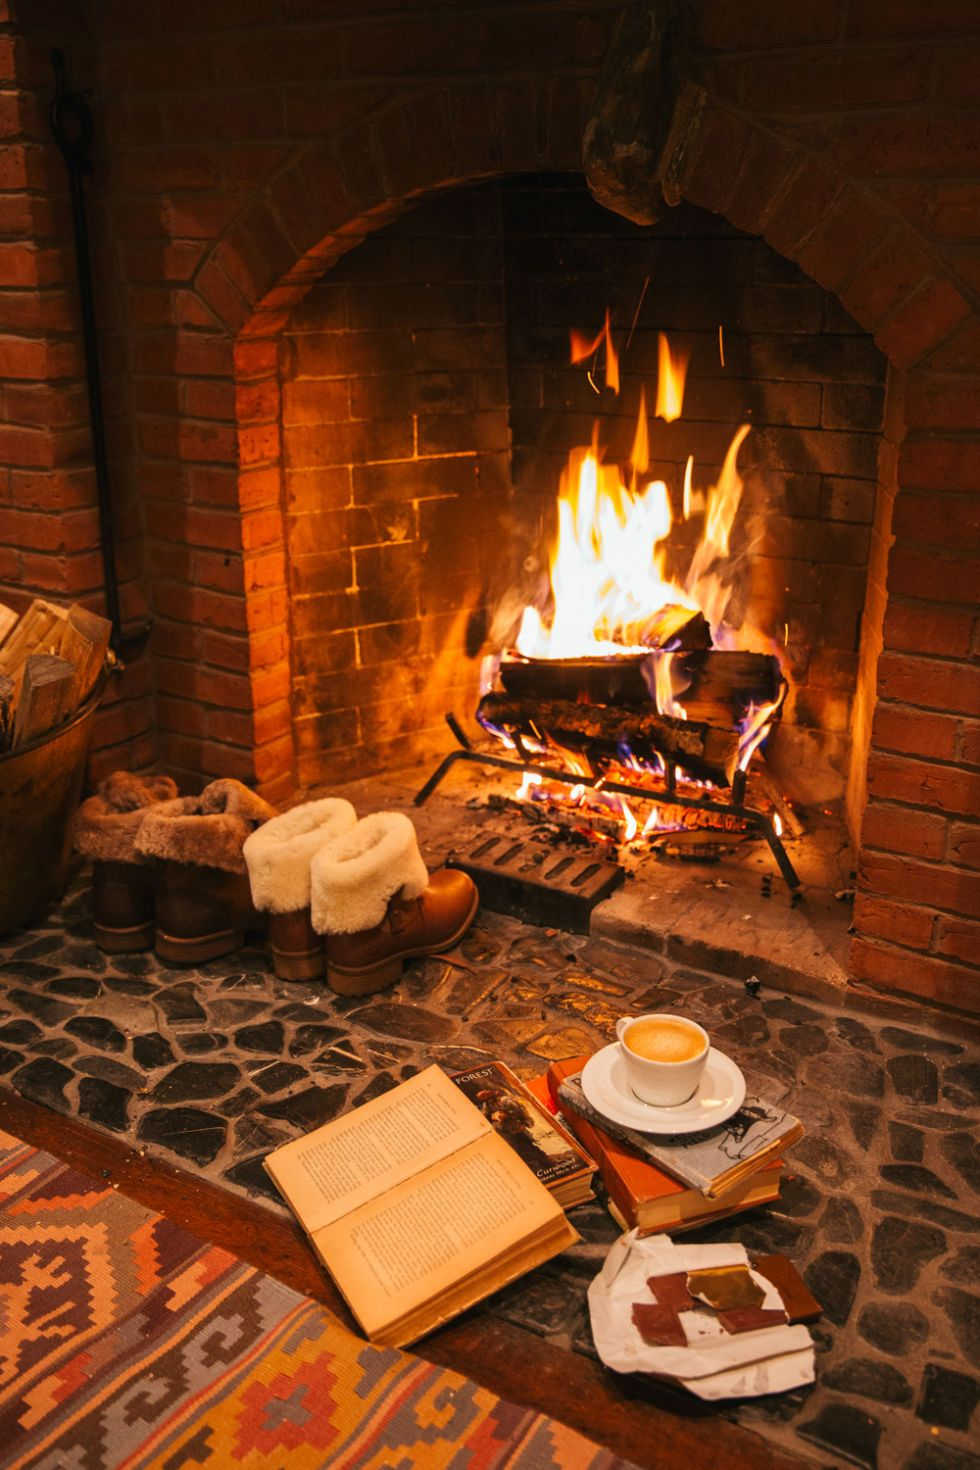 11 Cozy Photos of Fireplaces That Will Make You Wa